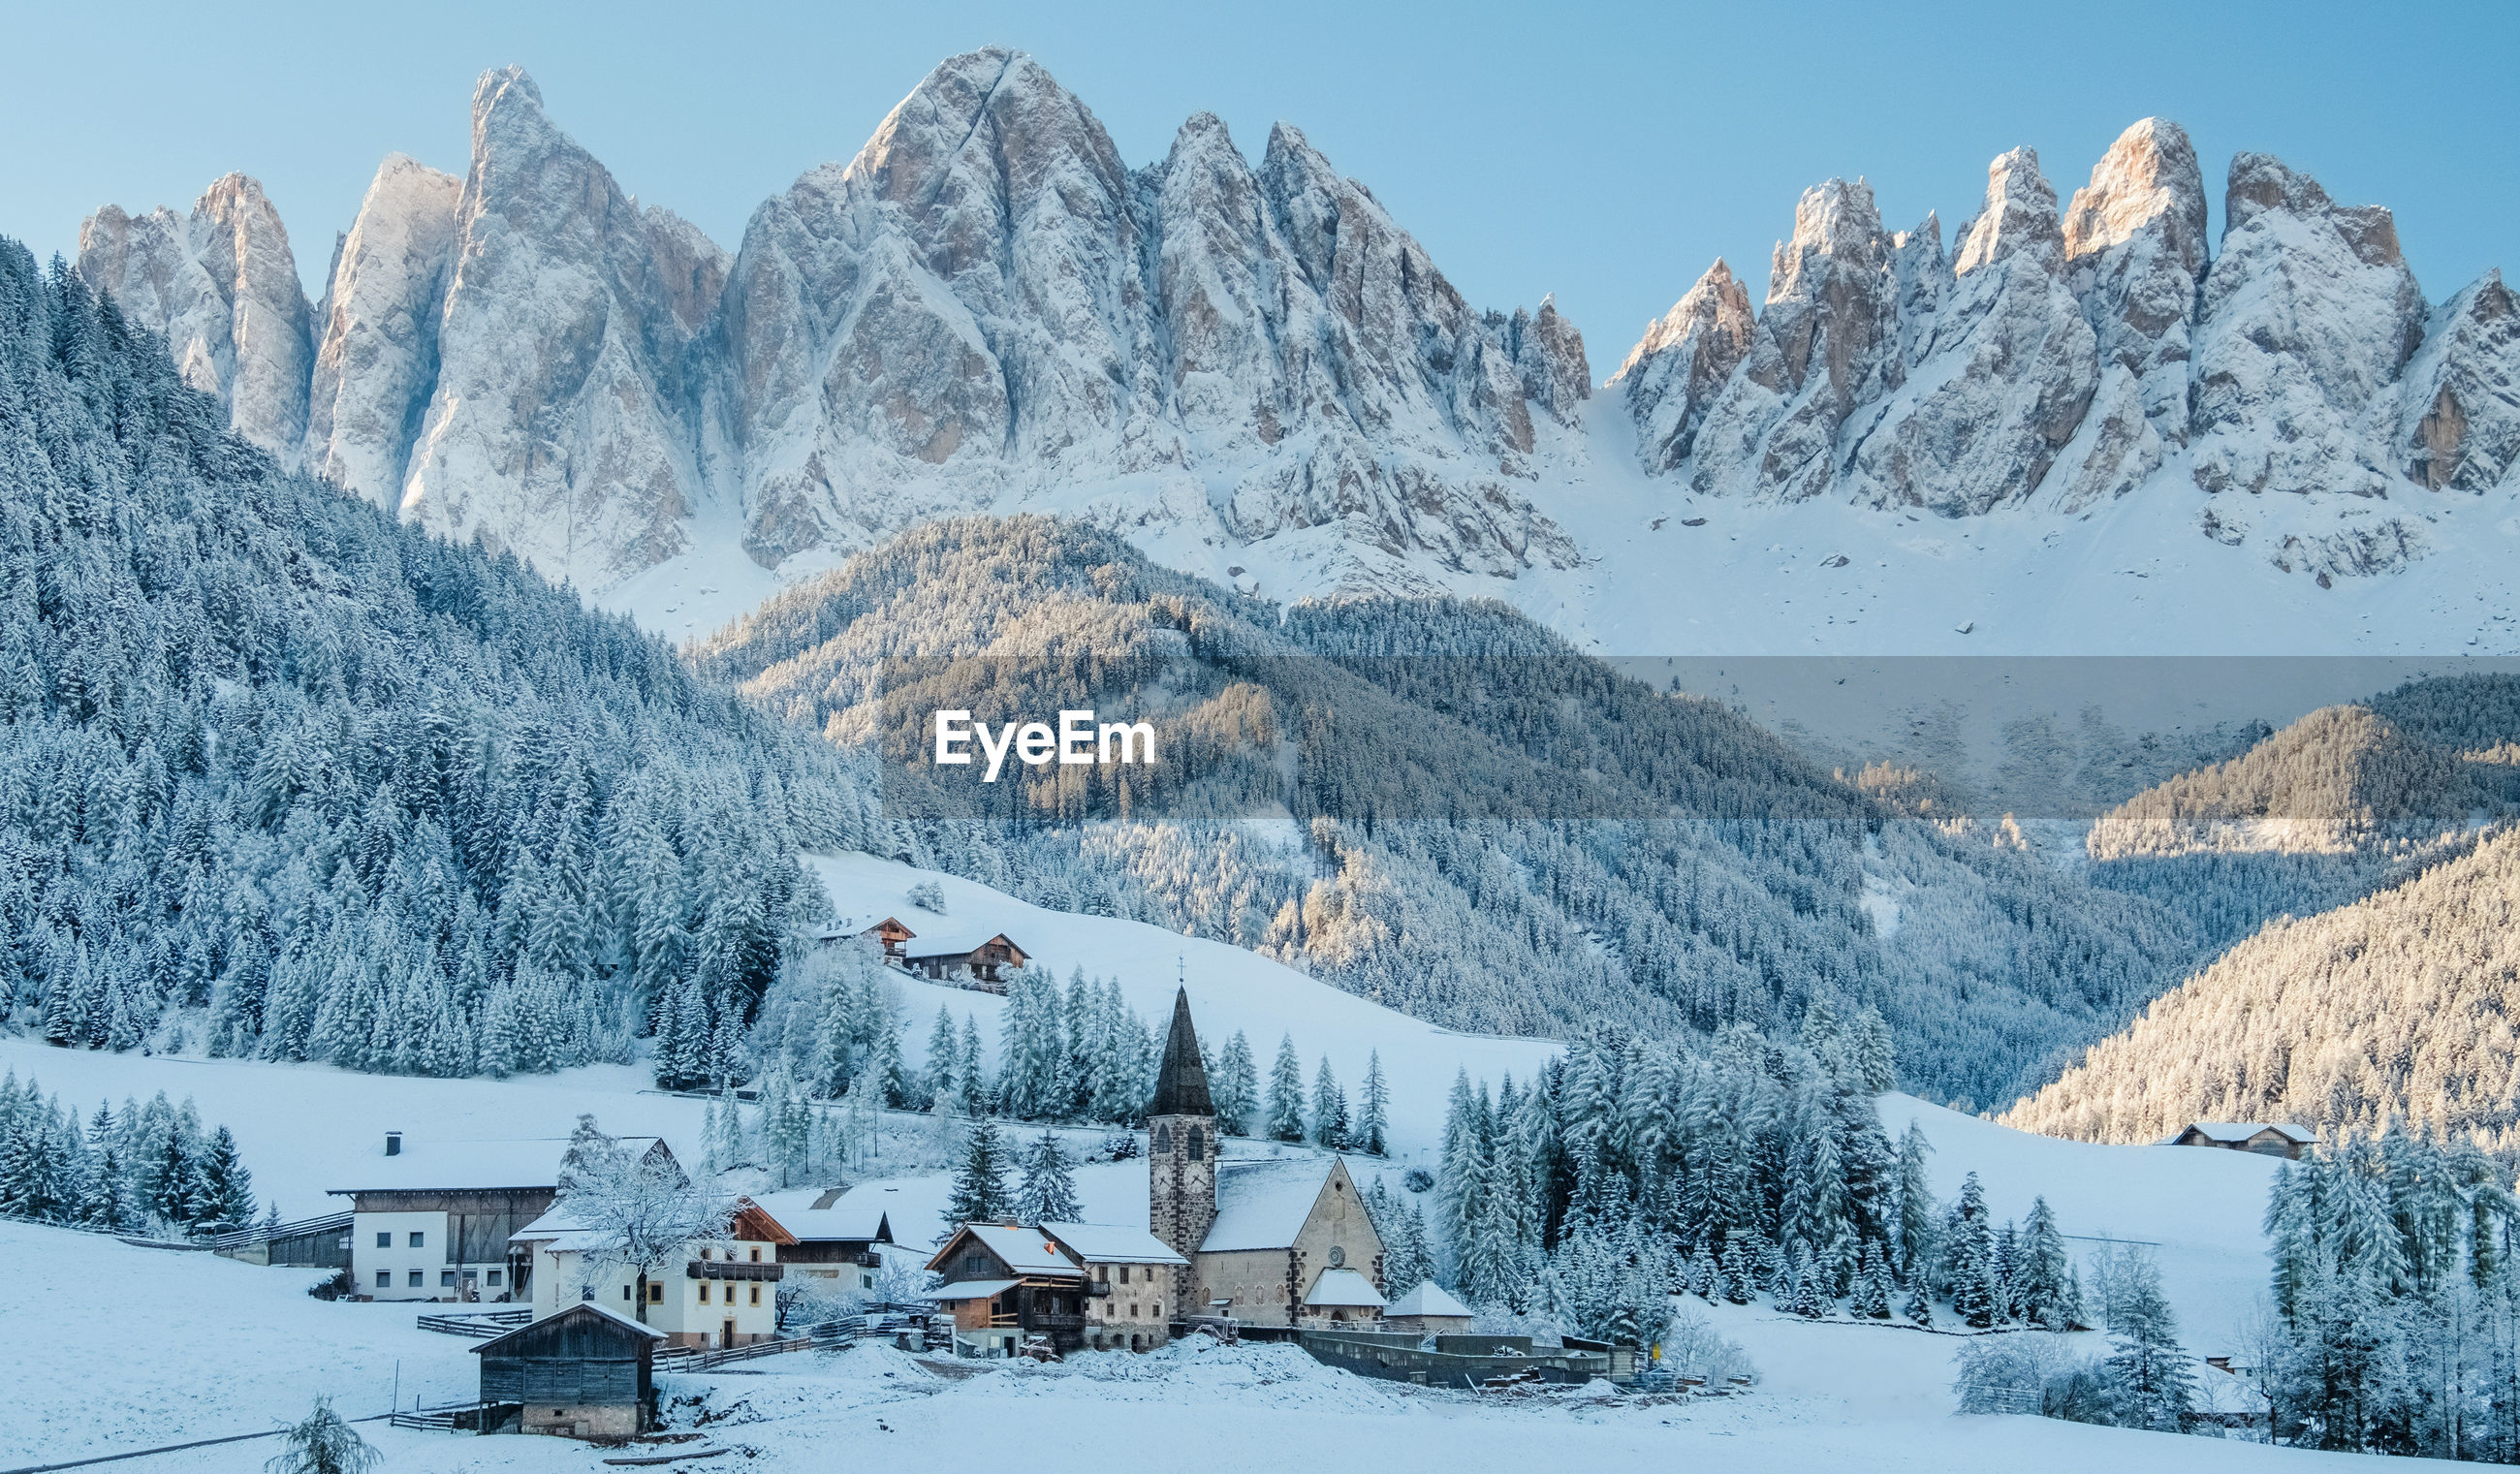 The small village val di funes covered in snow, with dolomites mountains, south tyrol, italy.